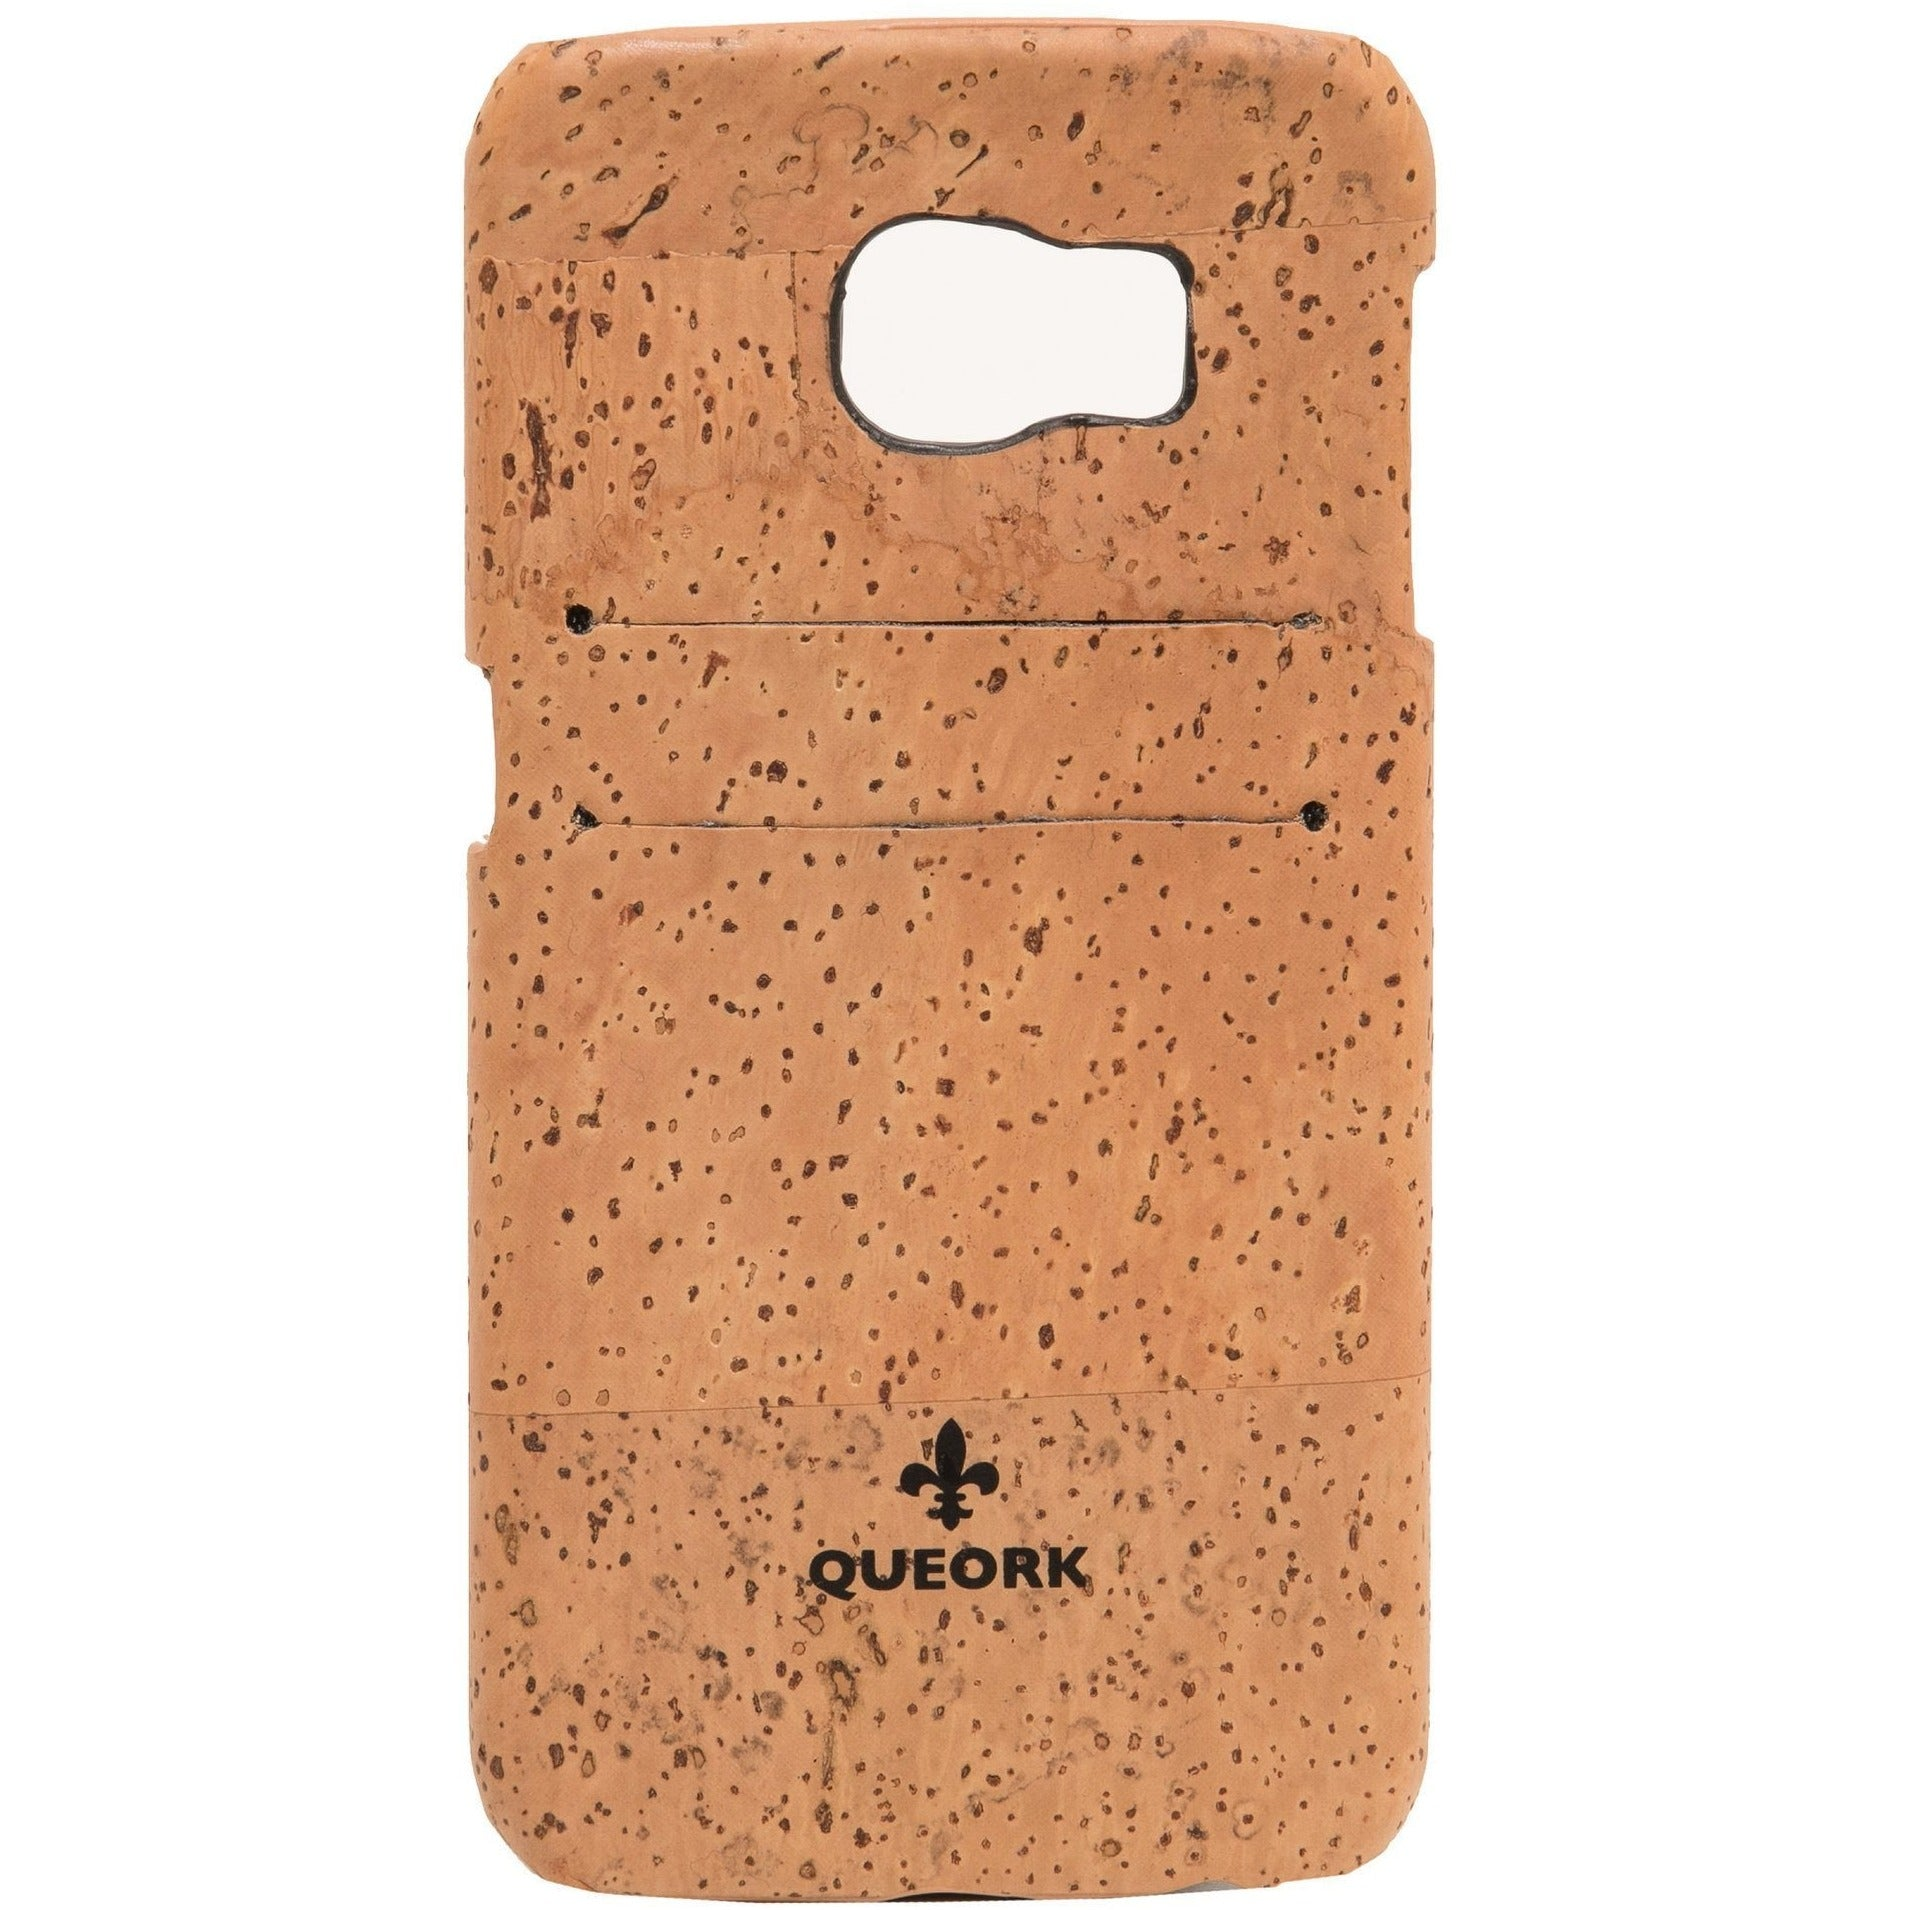 queork cork samsung phone case natural